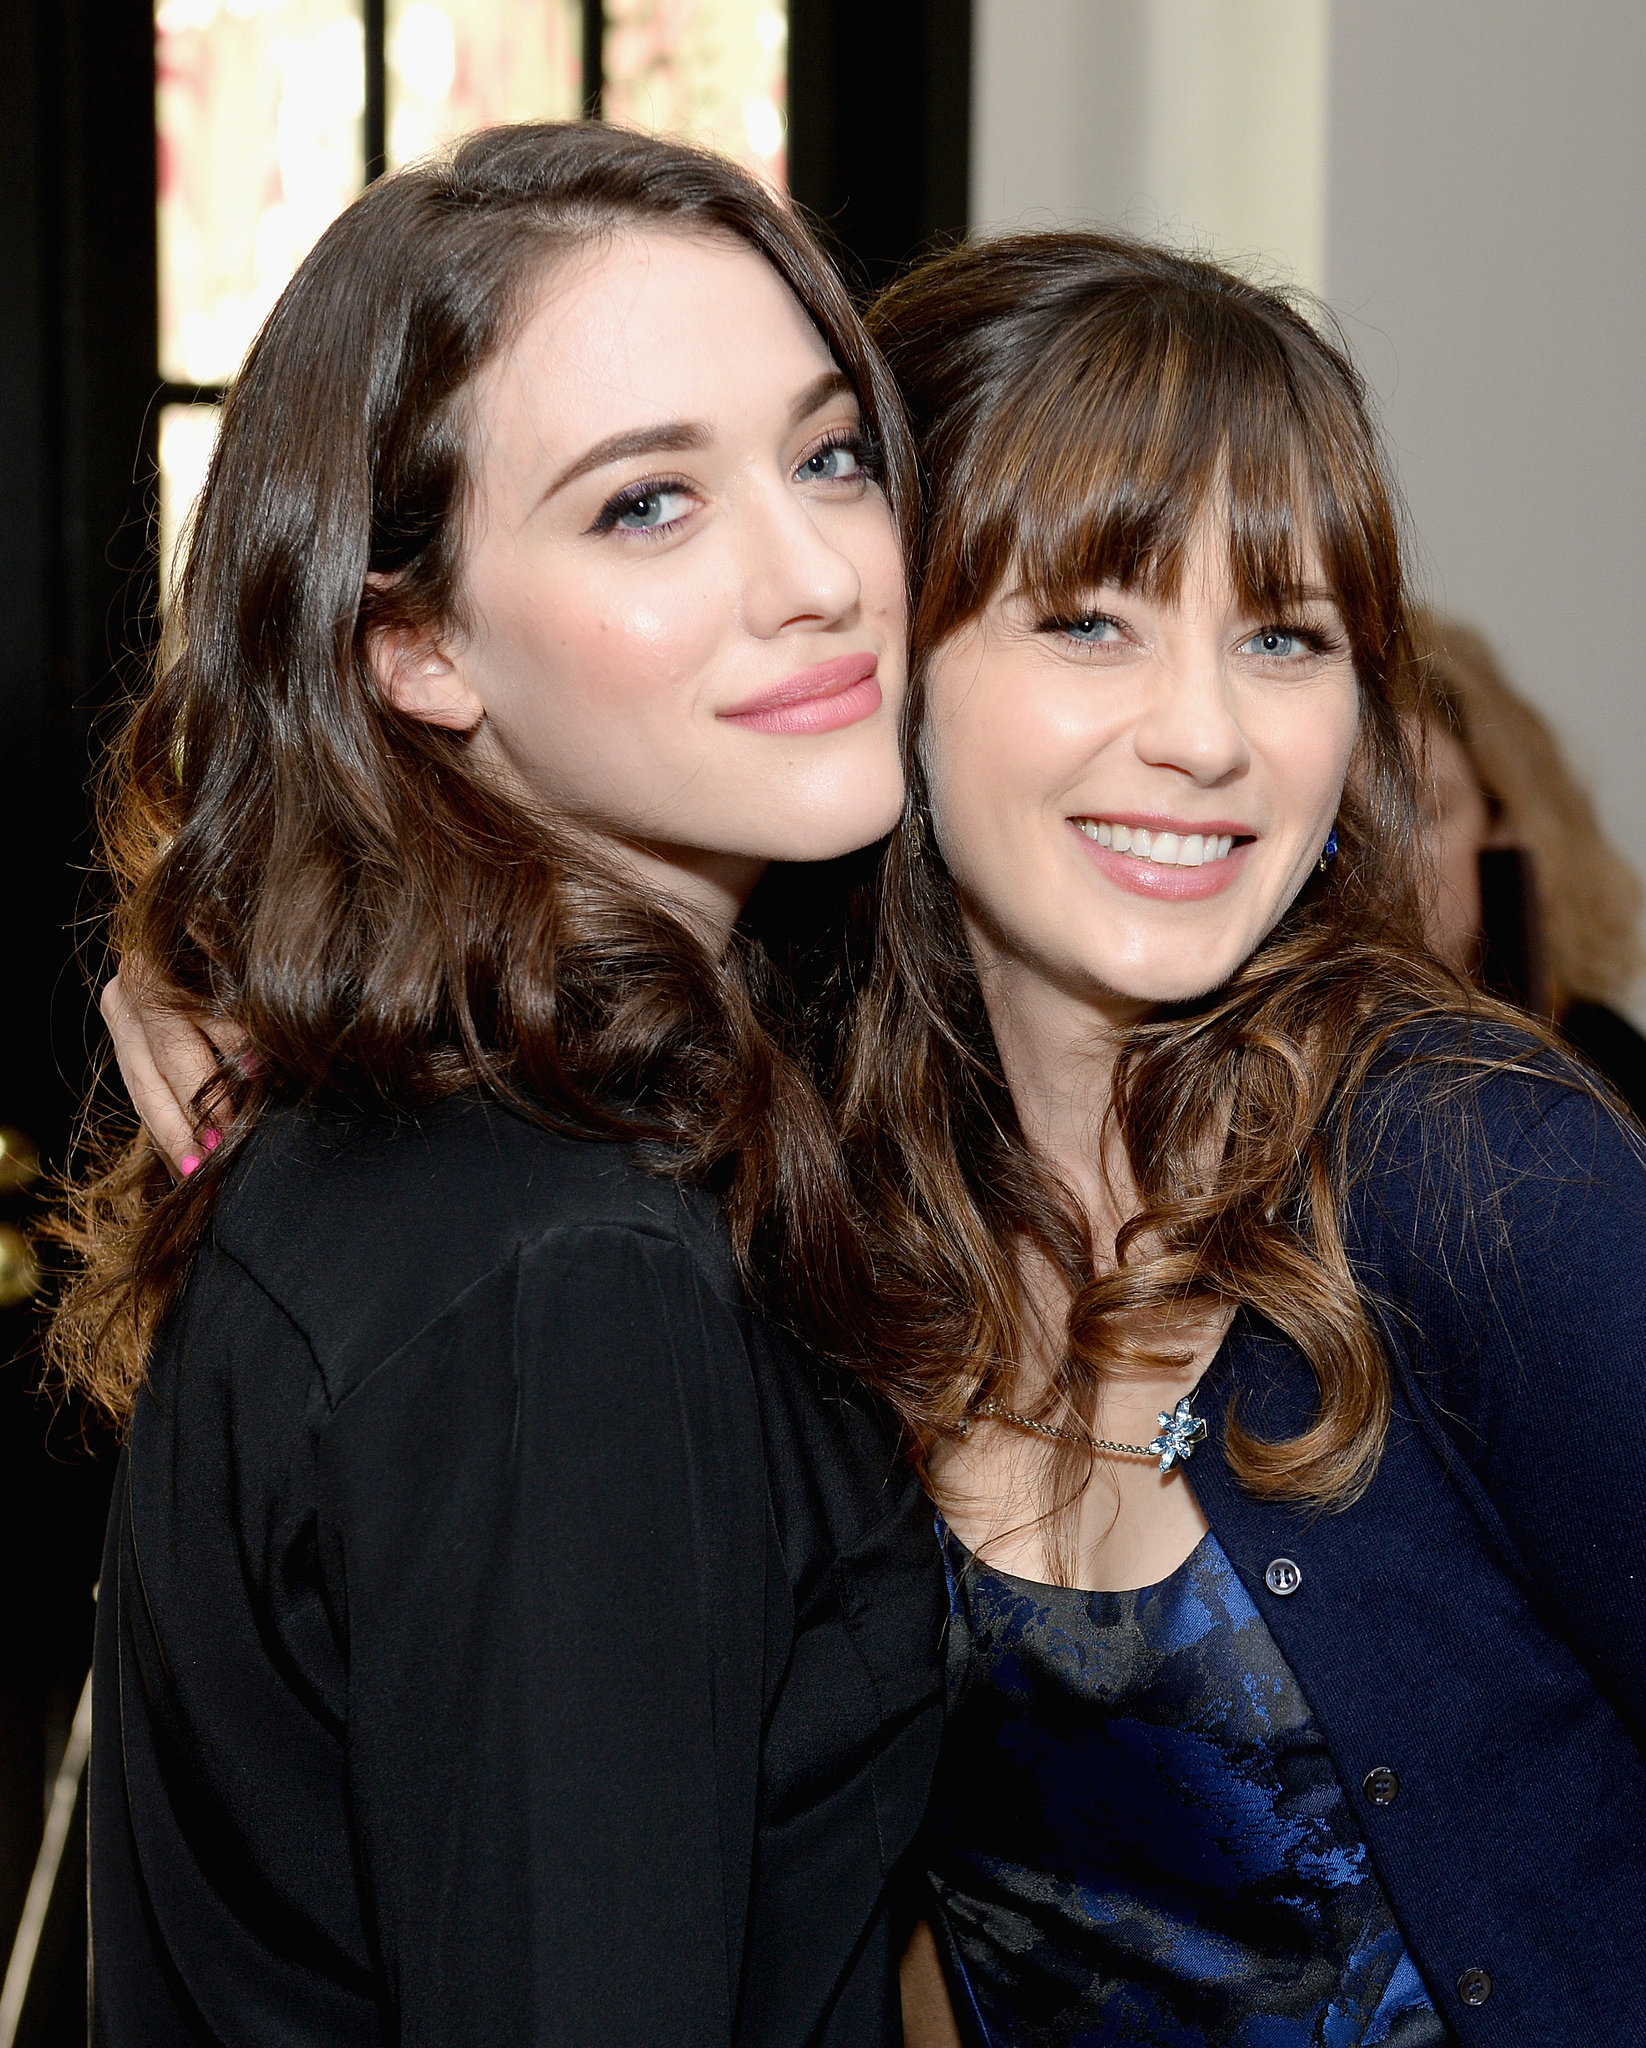 Both with glossy curls, Kat Dennings and Zooey Deschanel made a pretty pair after their panel. Kat opted for a peachy glow on her cheeks while Zooey flicked some inky black eyeliner across her lids.